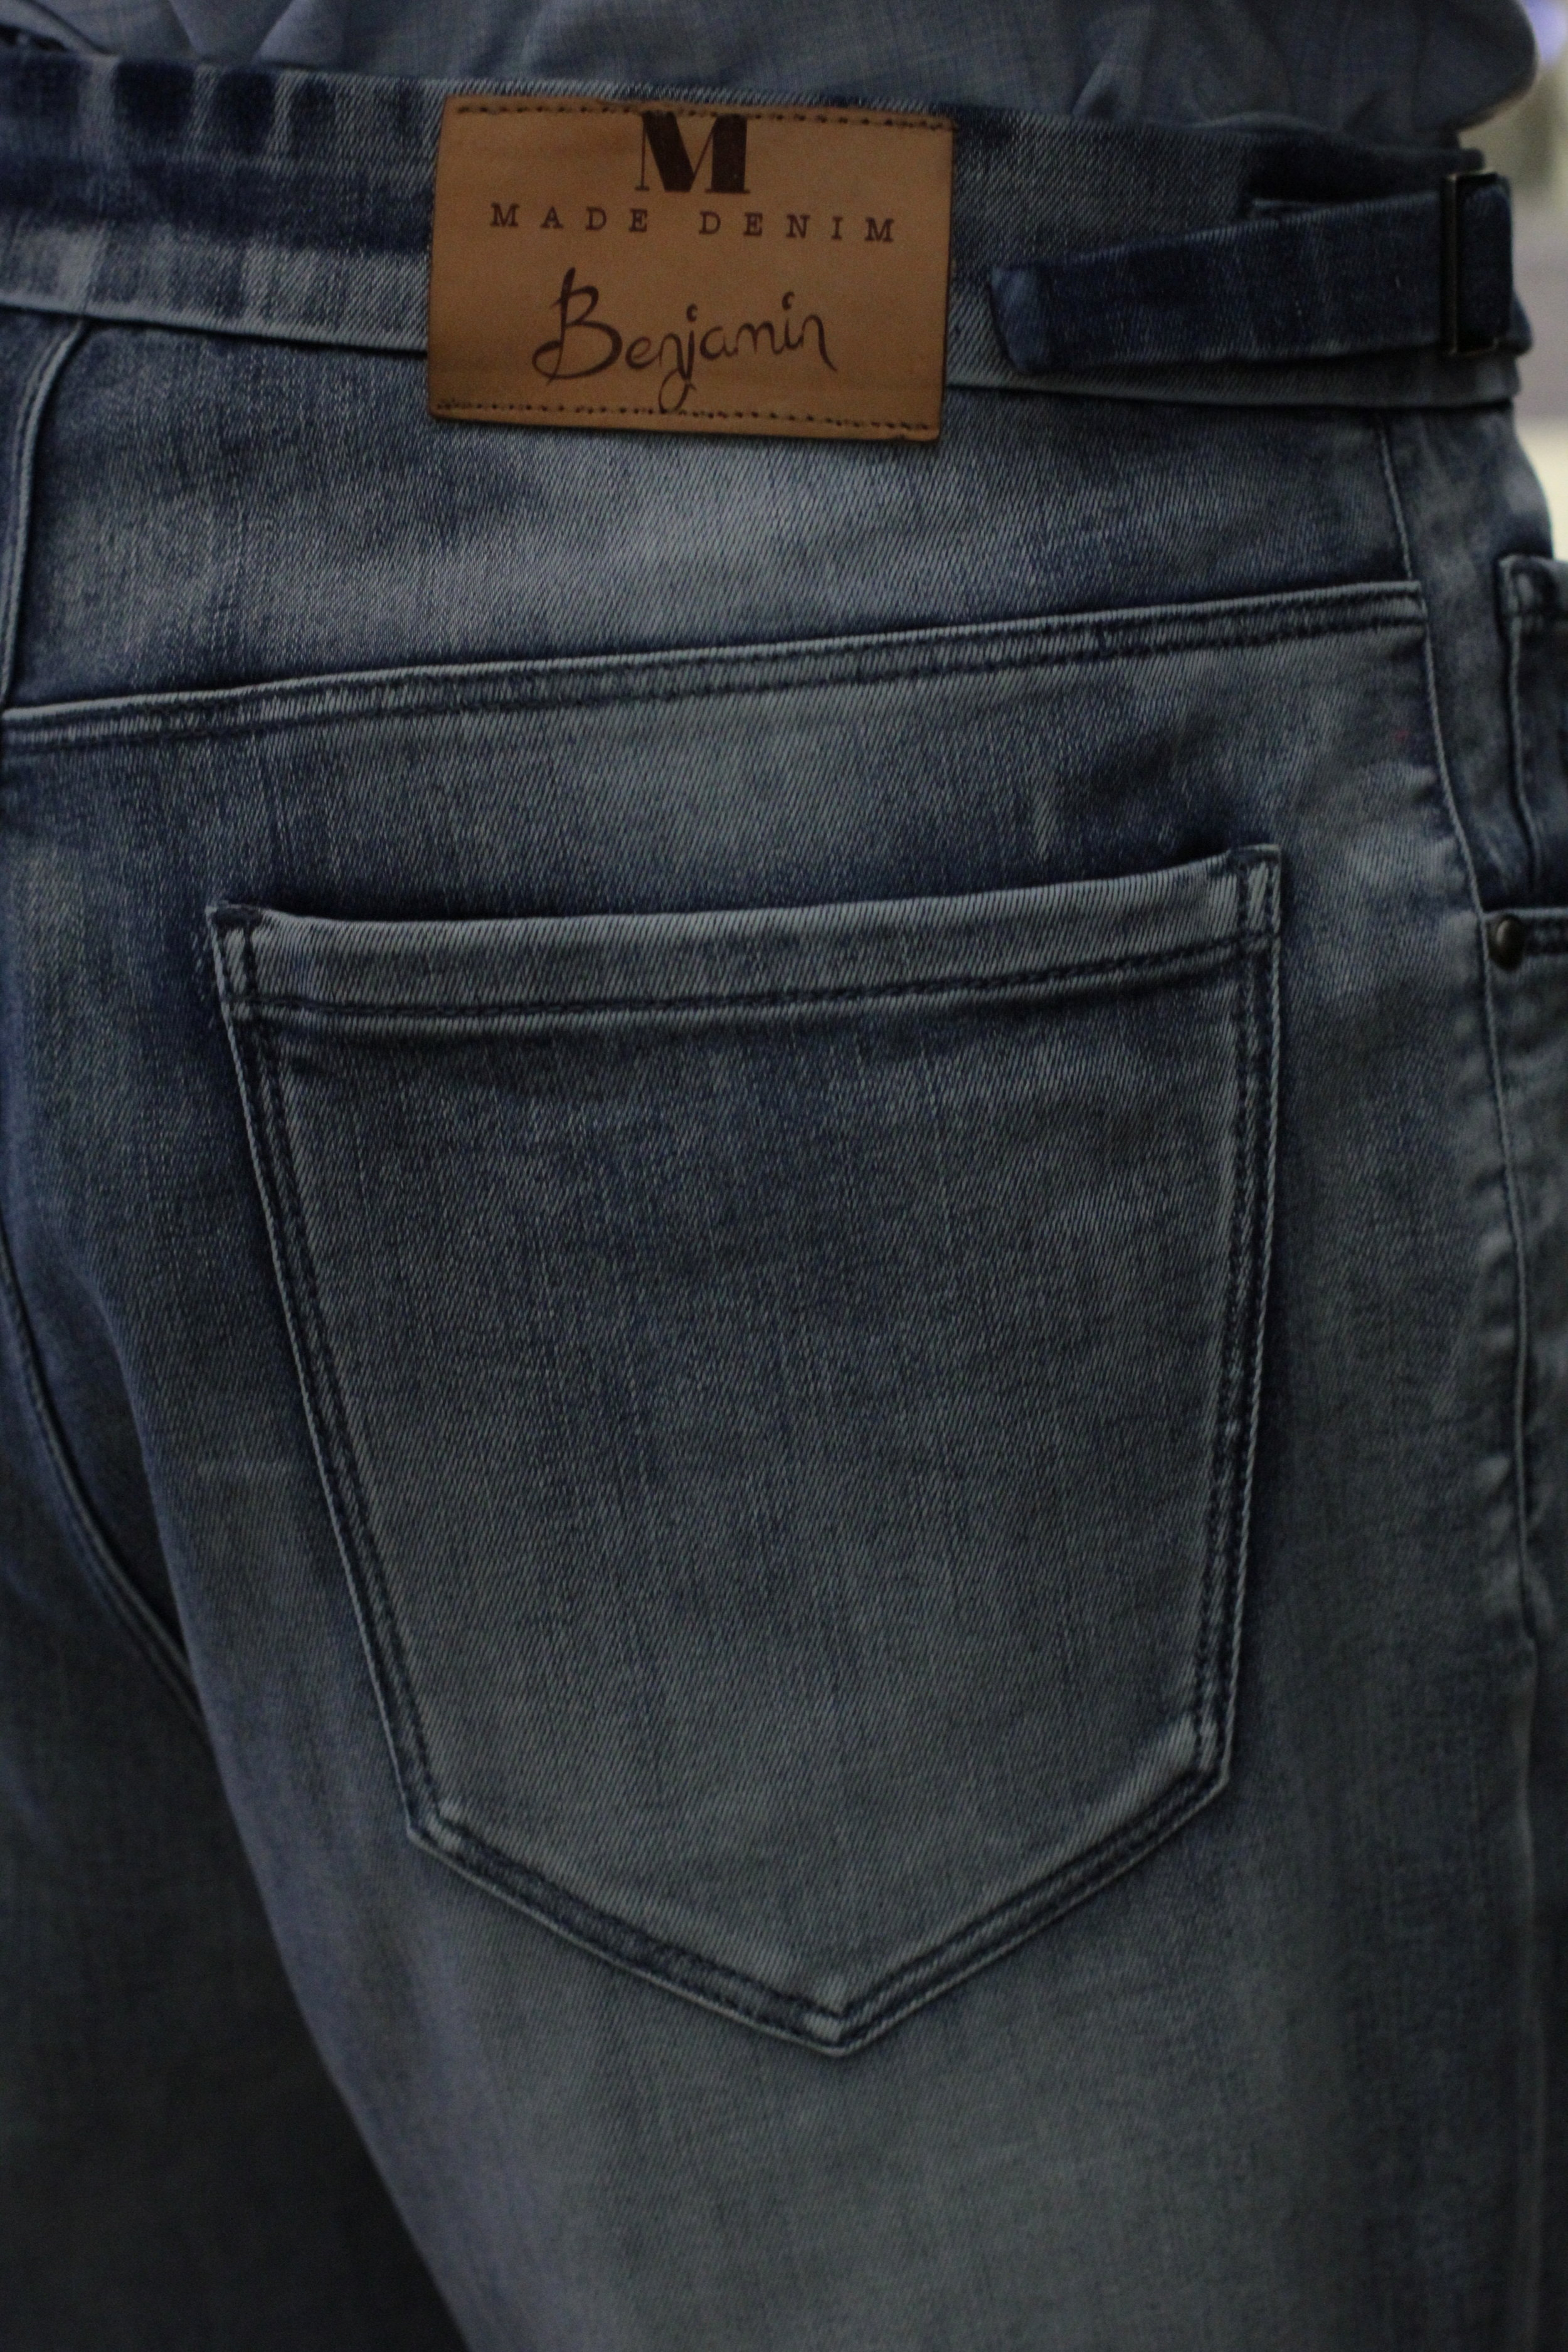 MADE DENIM BESPOKE DENIM JEANS SINGAPORE